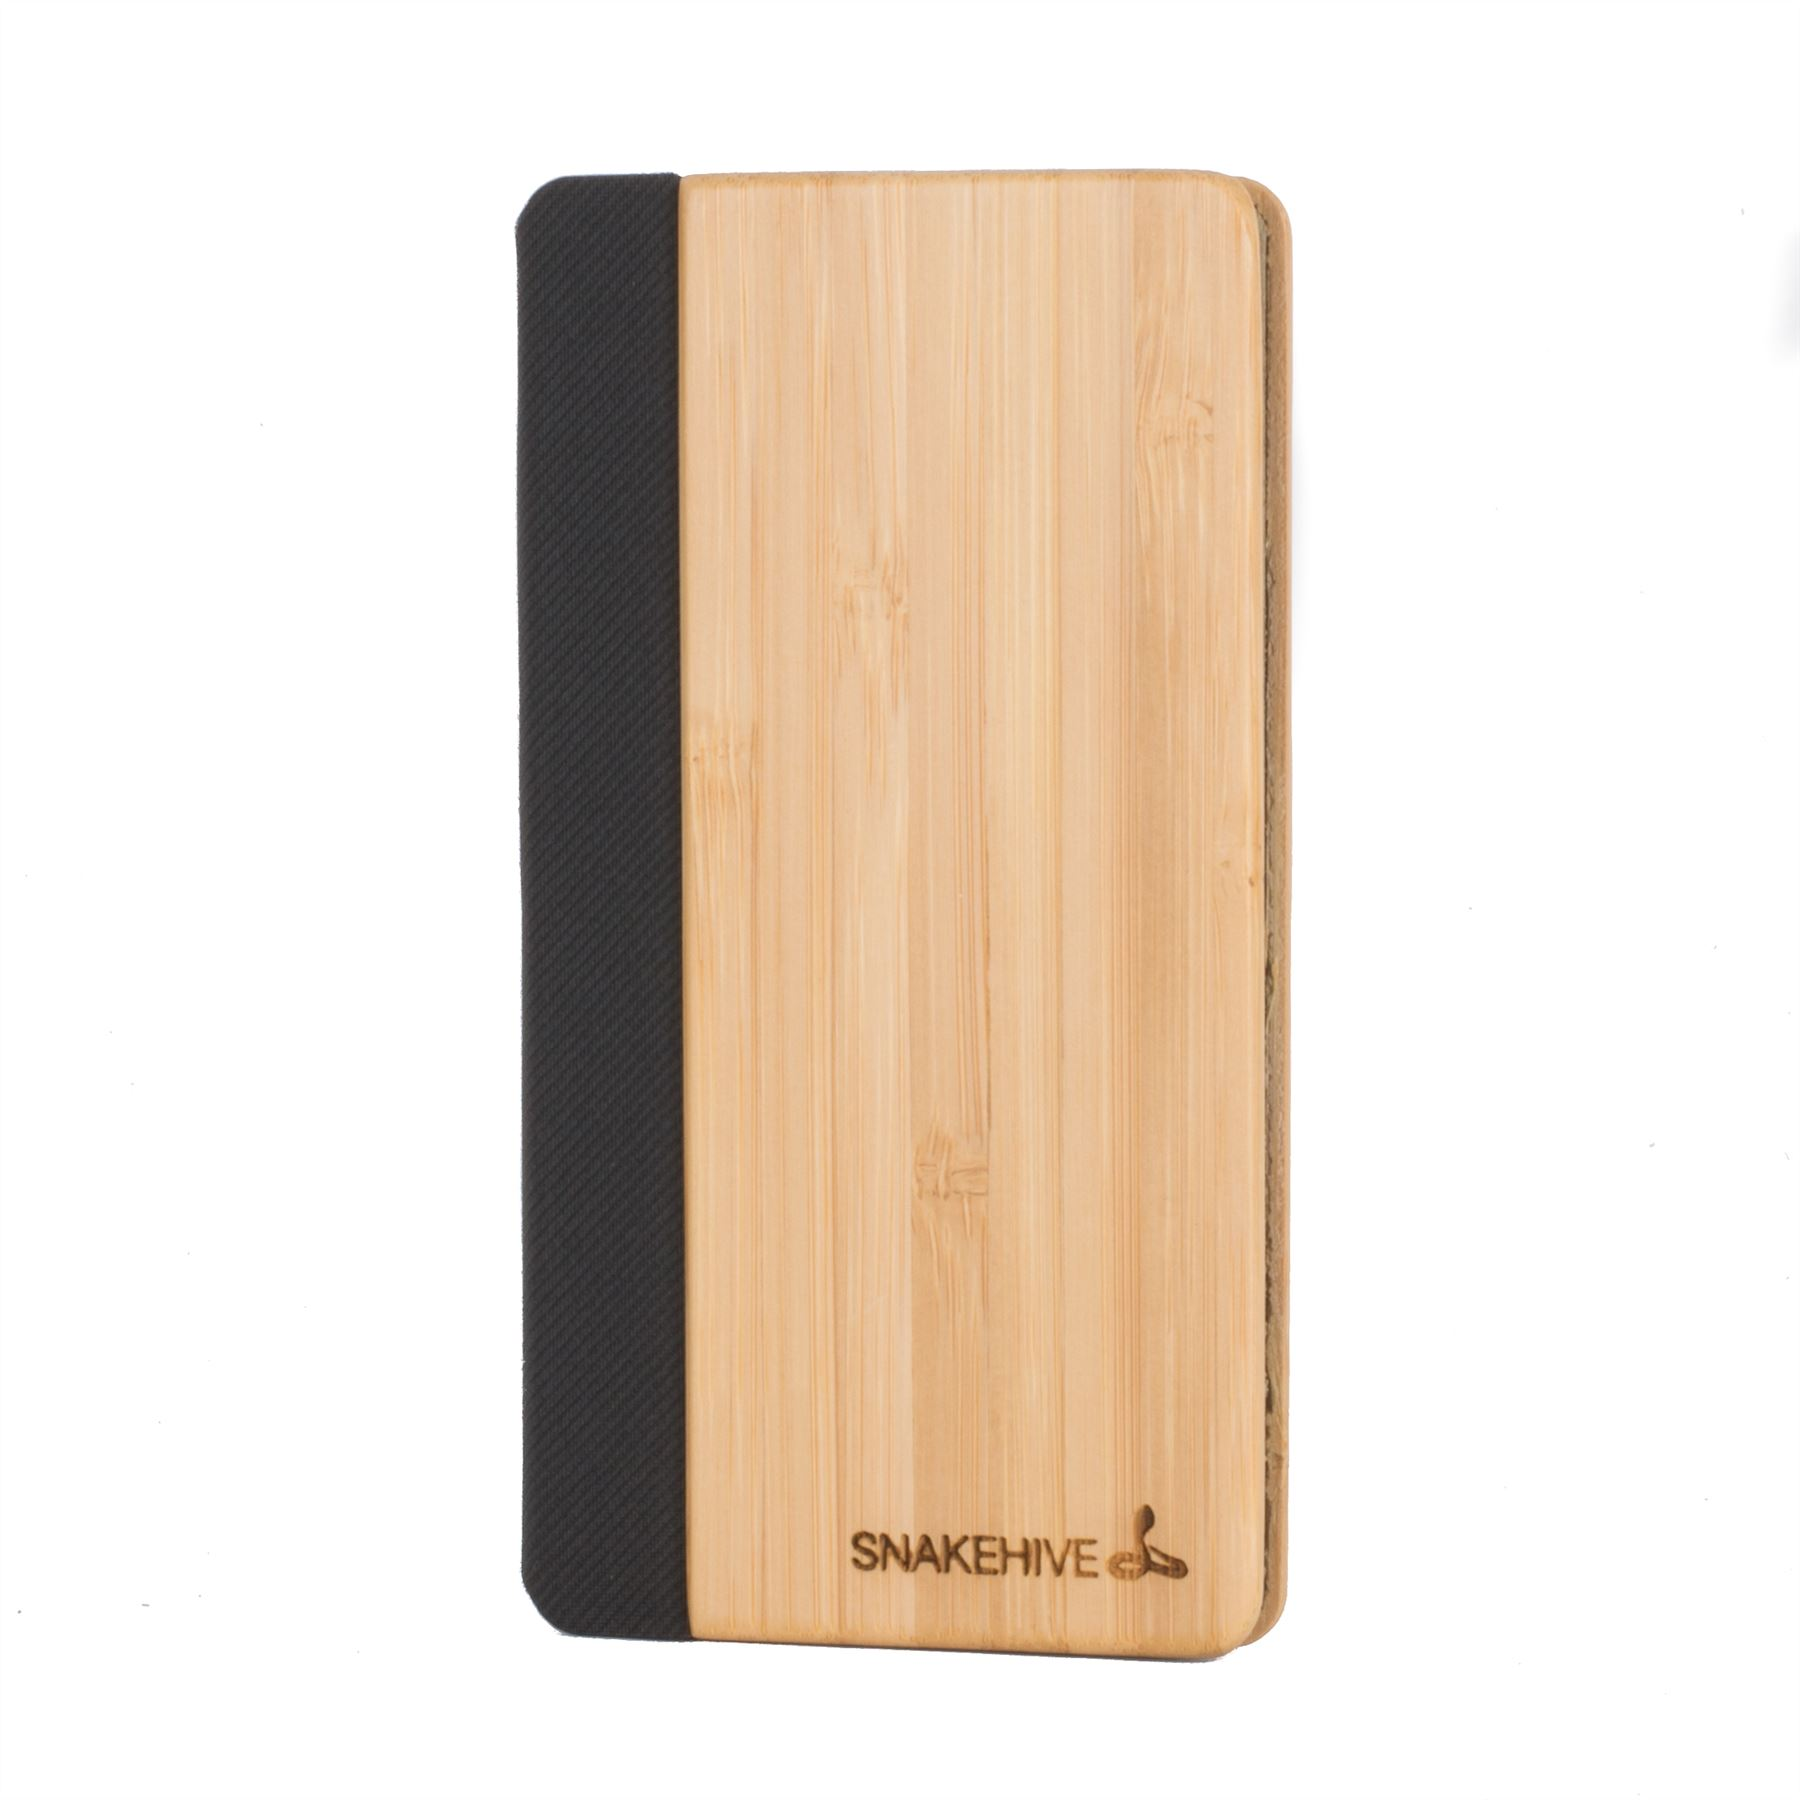 xperia z3 compact case wood